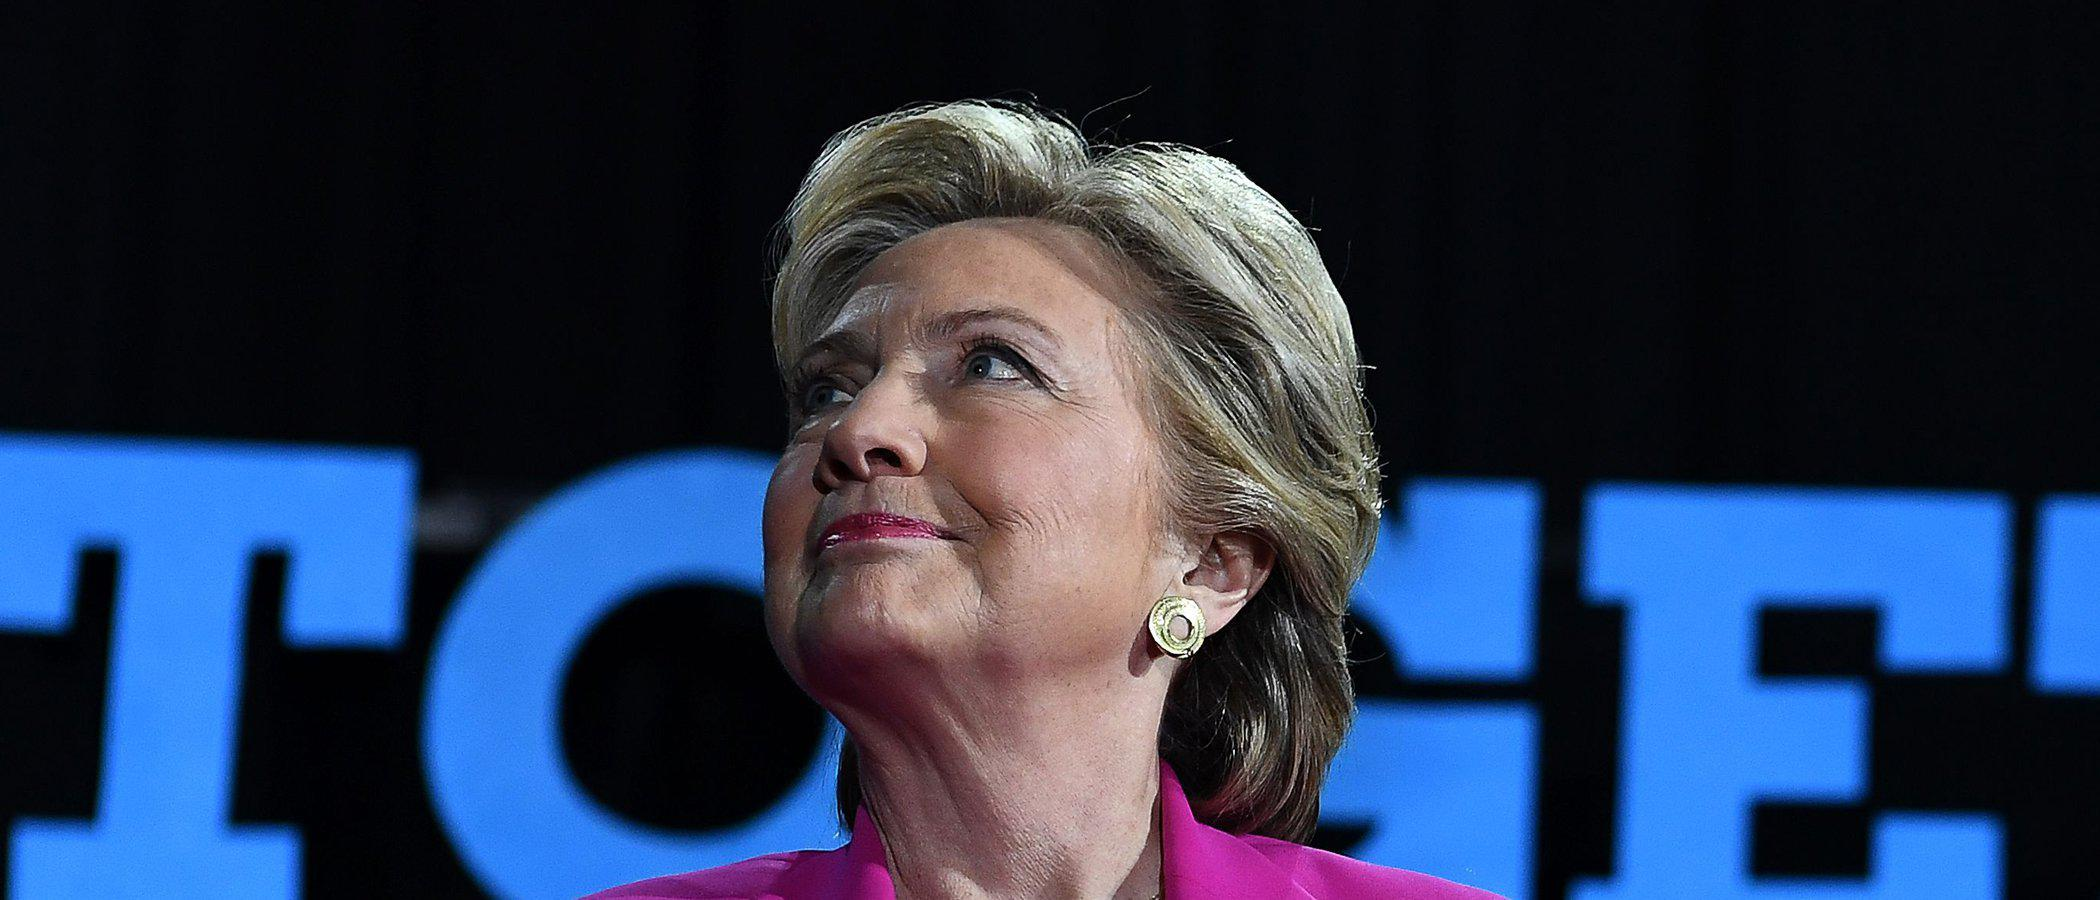 EMAILS: Everything The Leaks Taught Us About The Clintons ... Daily Caller